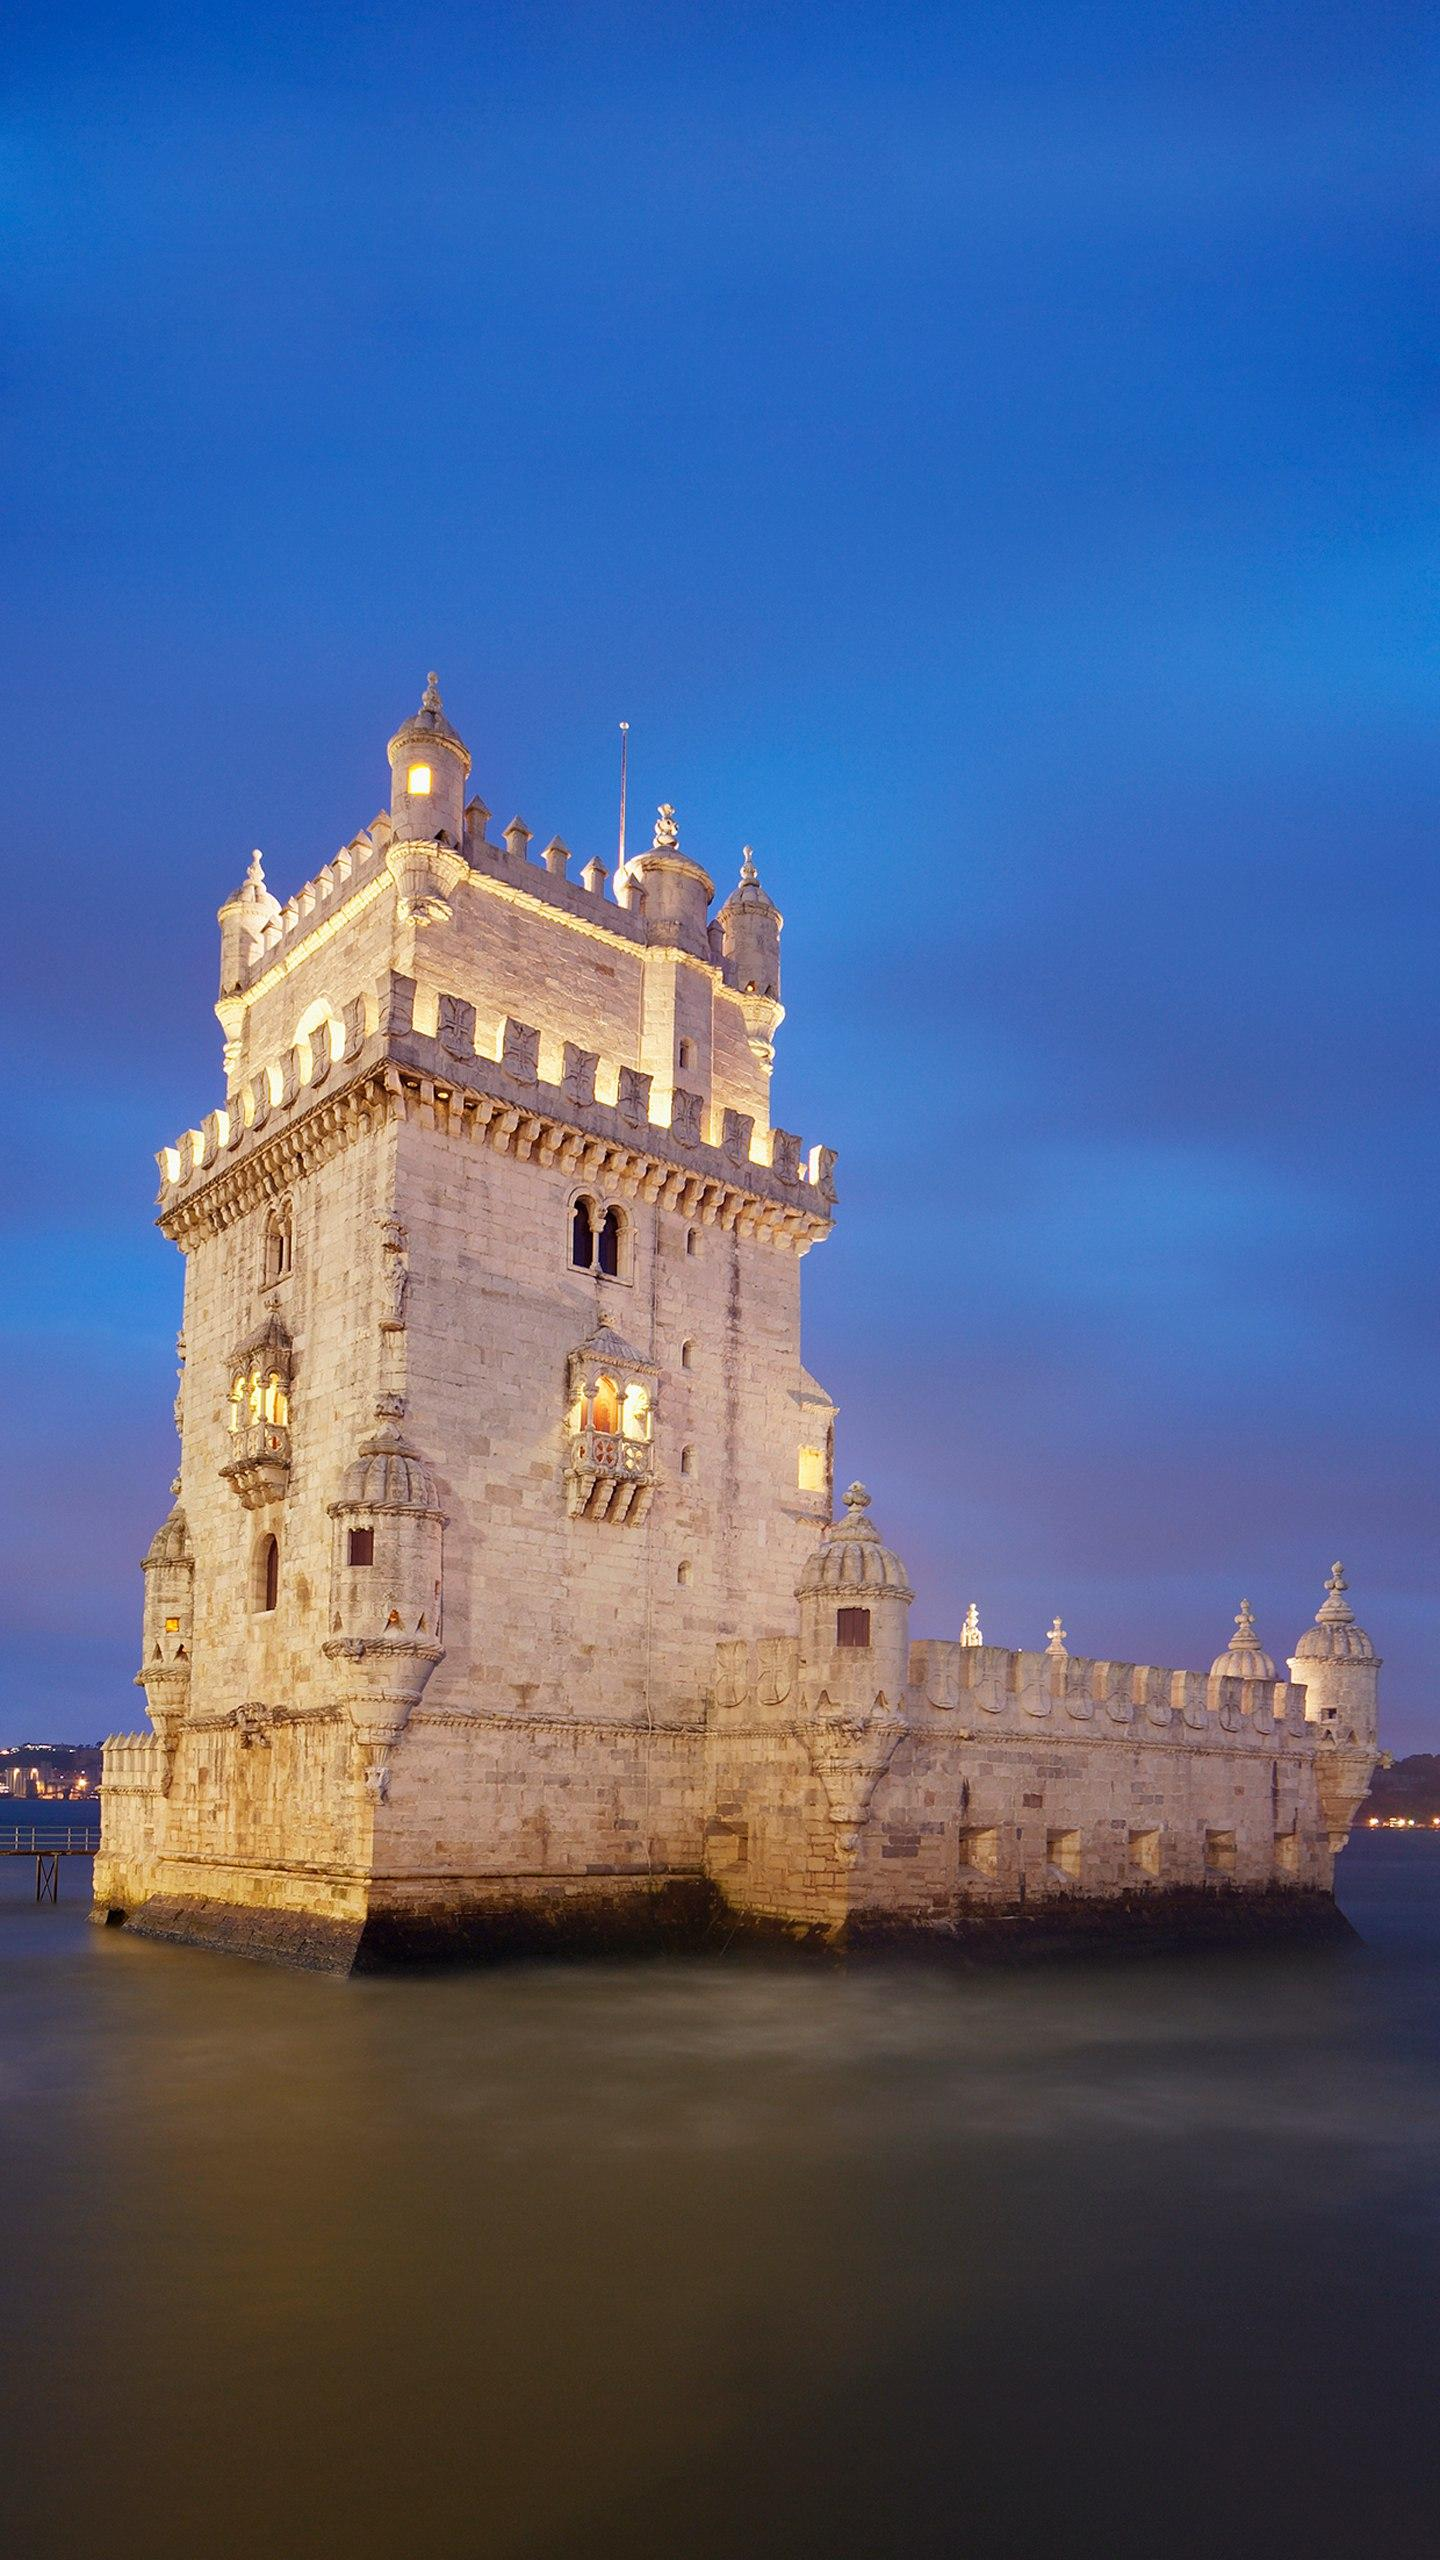 Lisbon - Belém Tower. Shaped like a bunker, all built with limestone, it is the most gorgeous and elegant building in Lisbon's countless monuments.